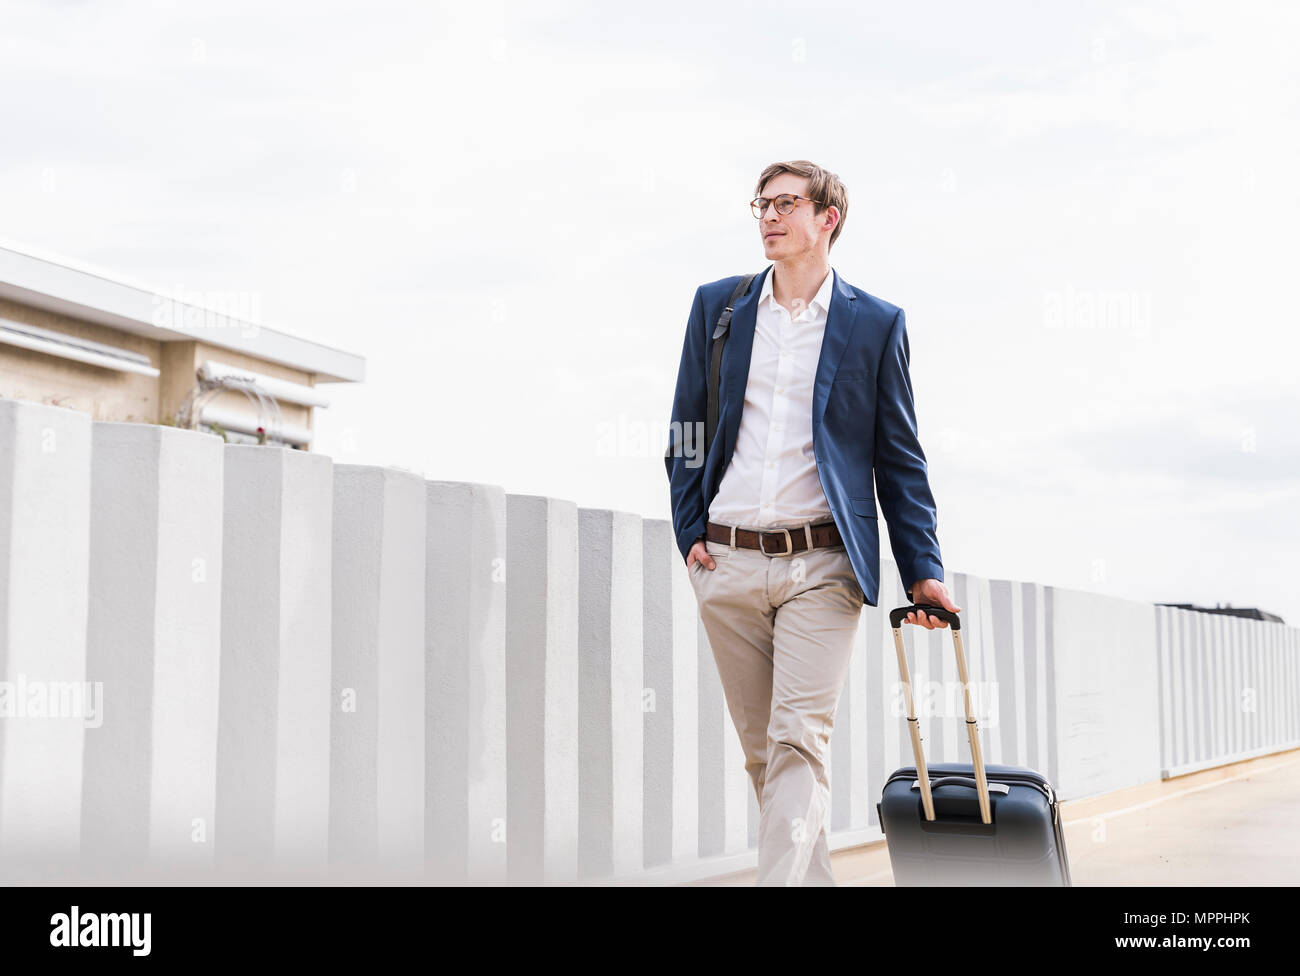 Confident businessman with rolling suitcase walking at parking garage - Stock Image